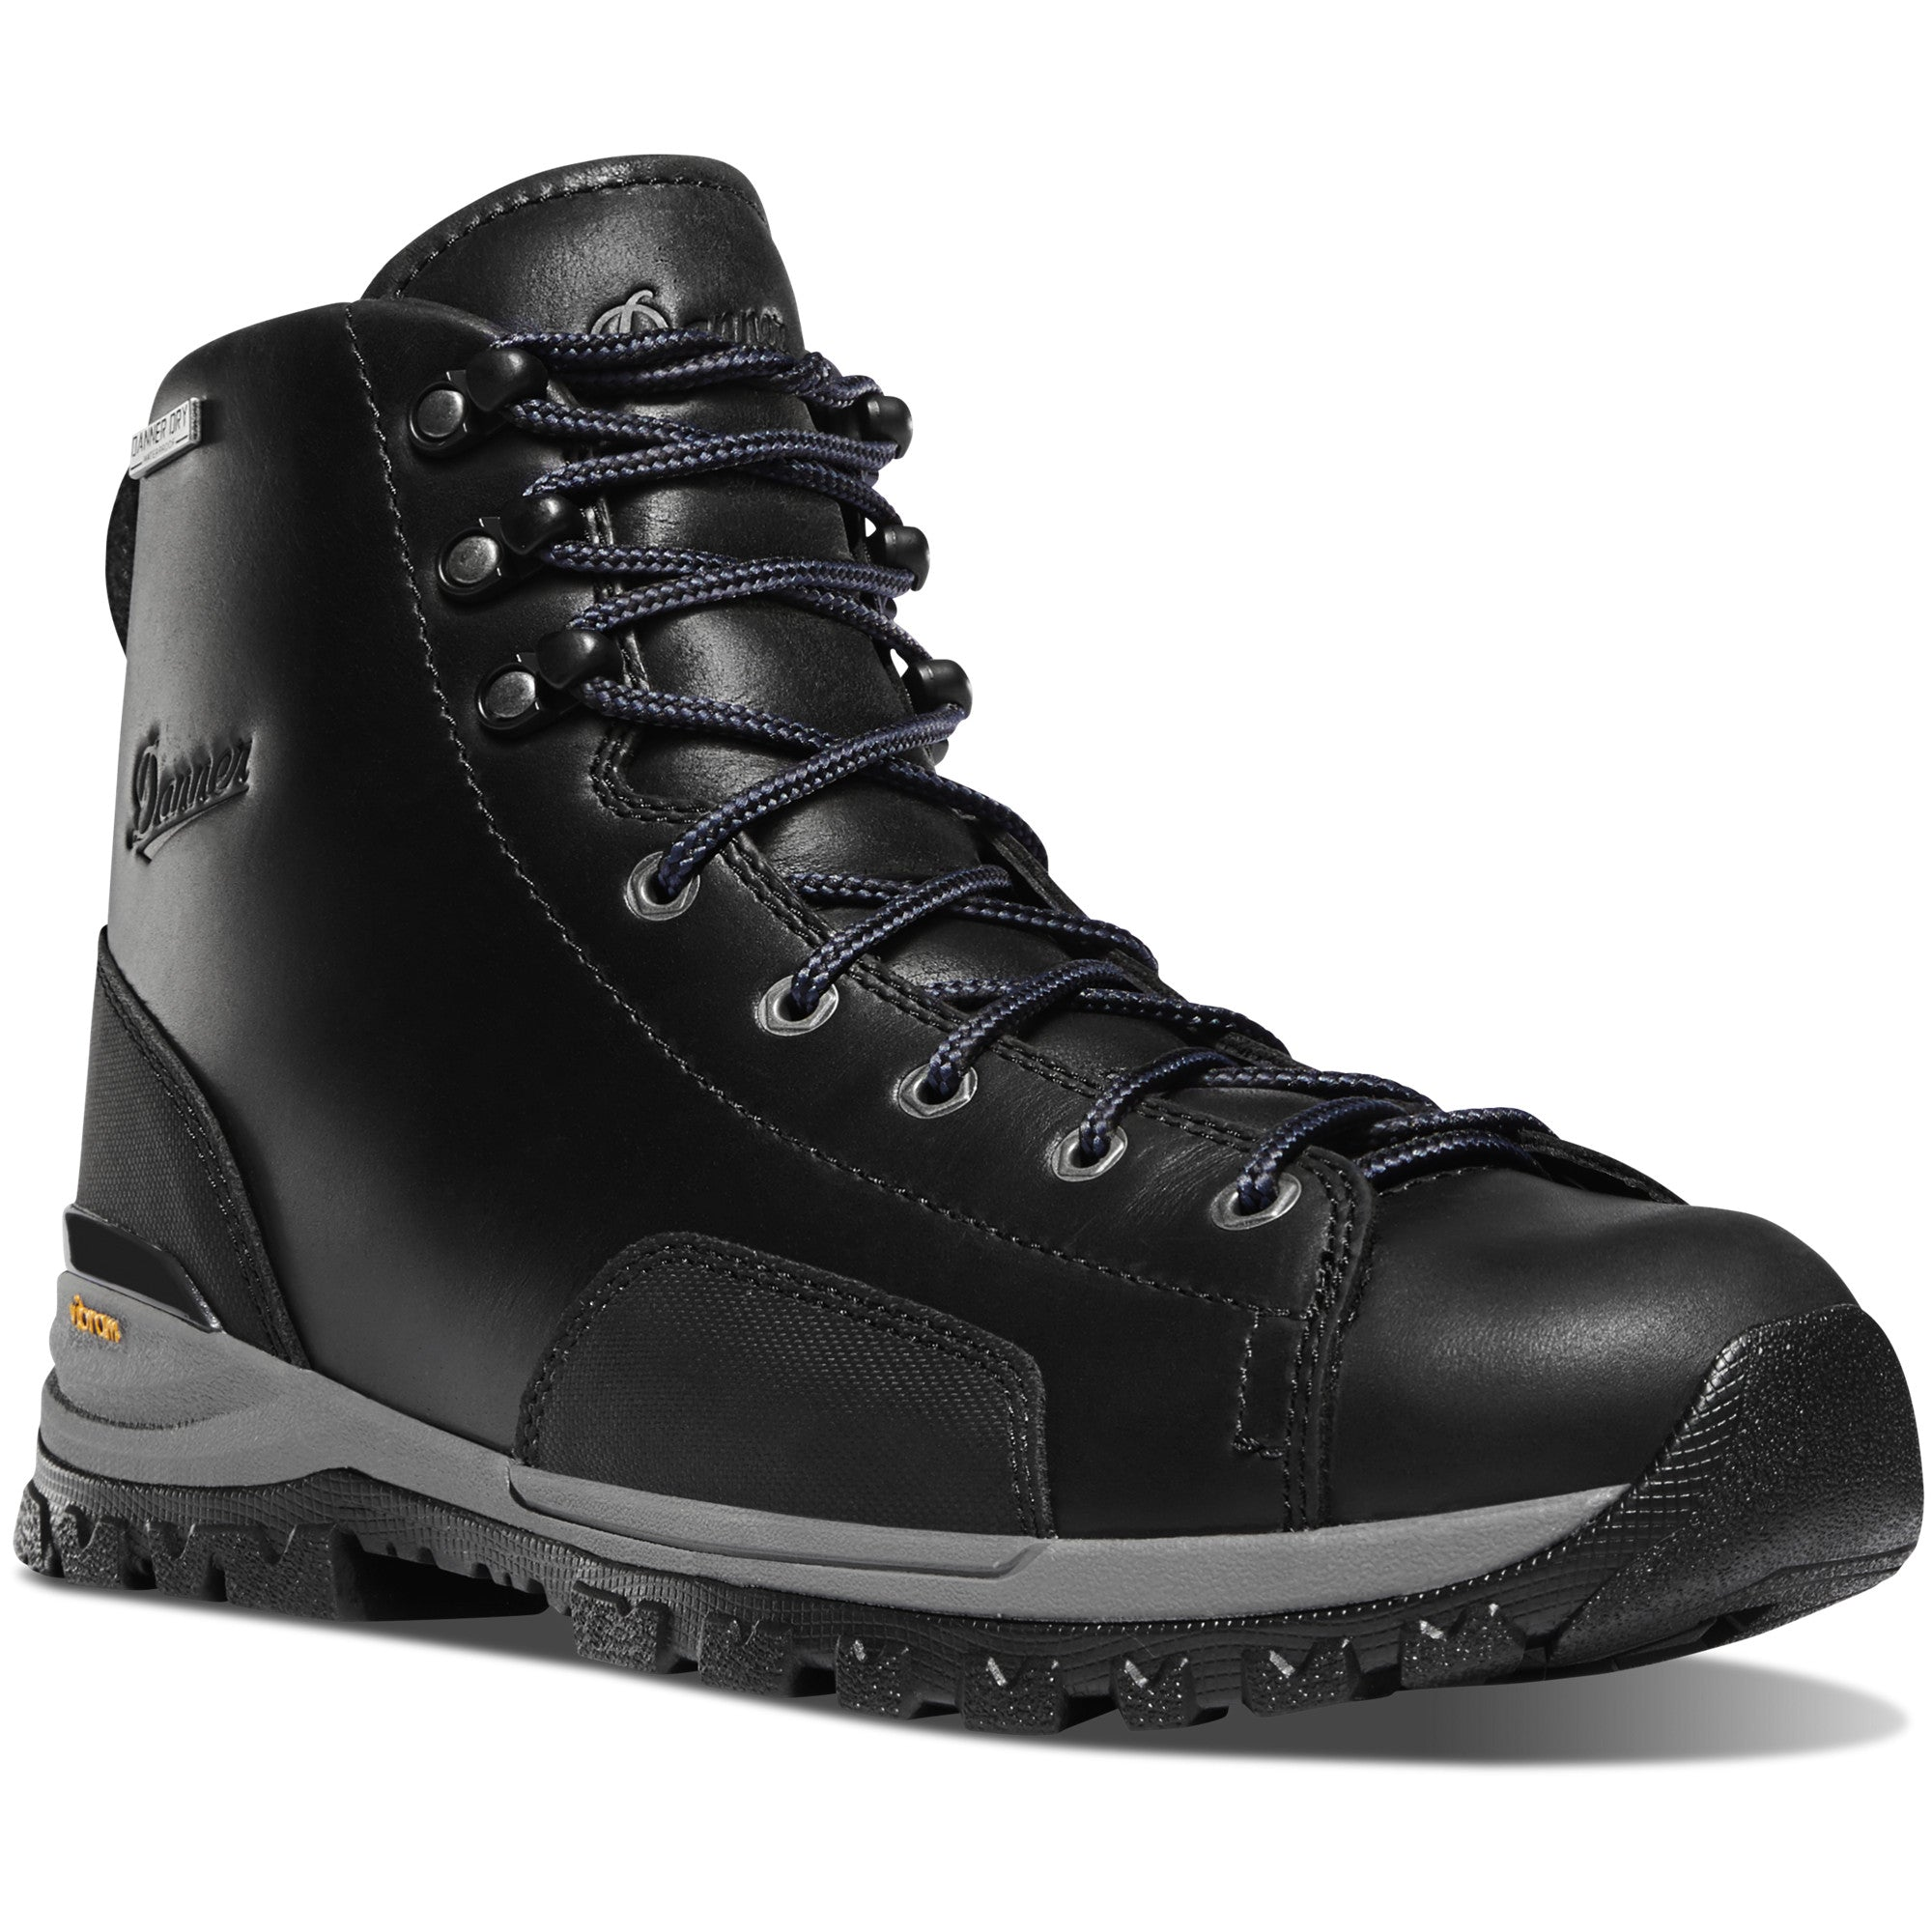 "Danner Men's Stronghold 6"" Waterproof Non-Metal Toe Work Boot in Black from the side"